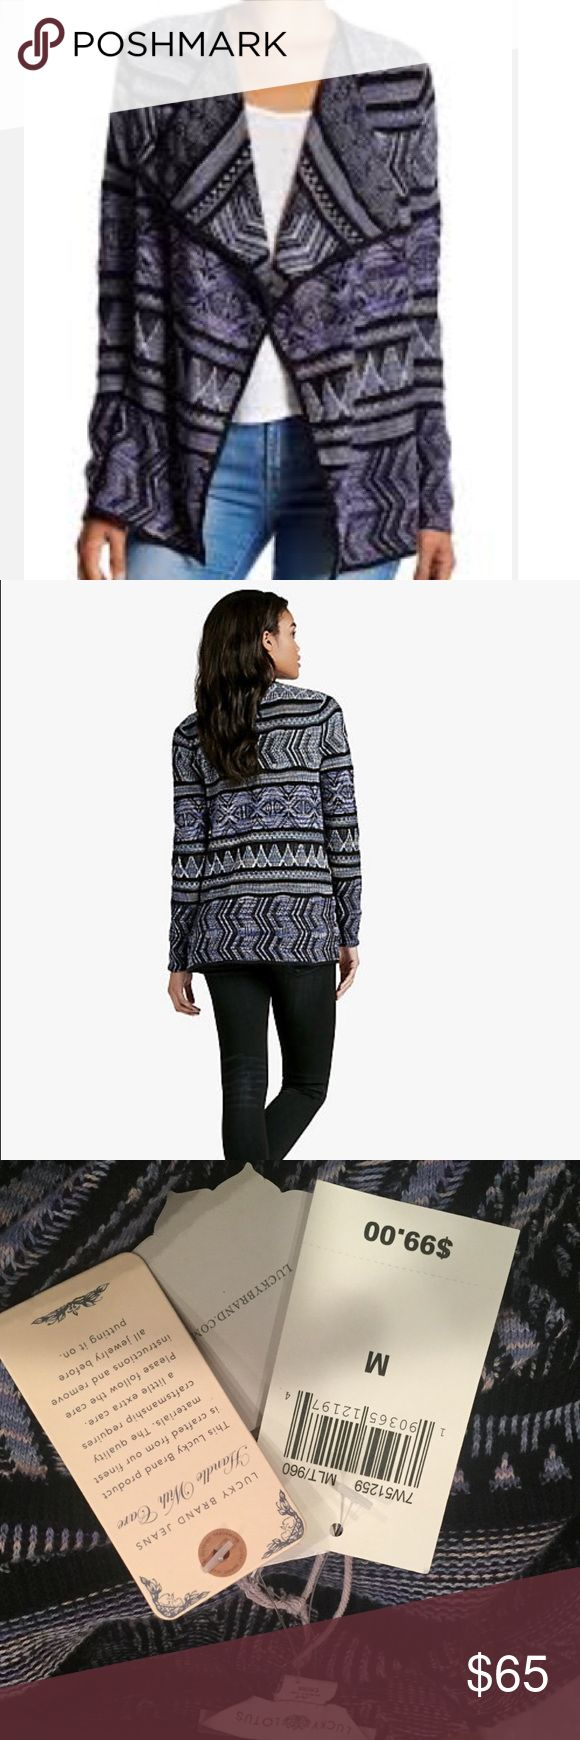 Lucky Brand sweater Brand new with tags Lucky Brand Sweaters